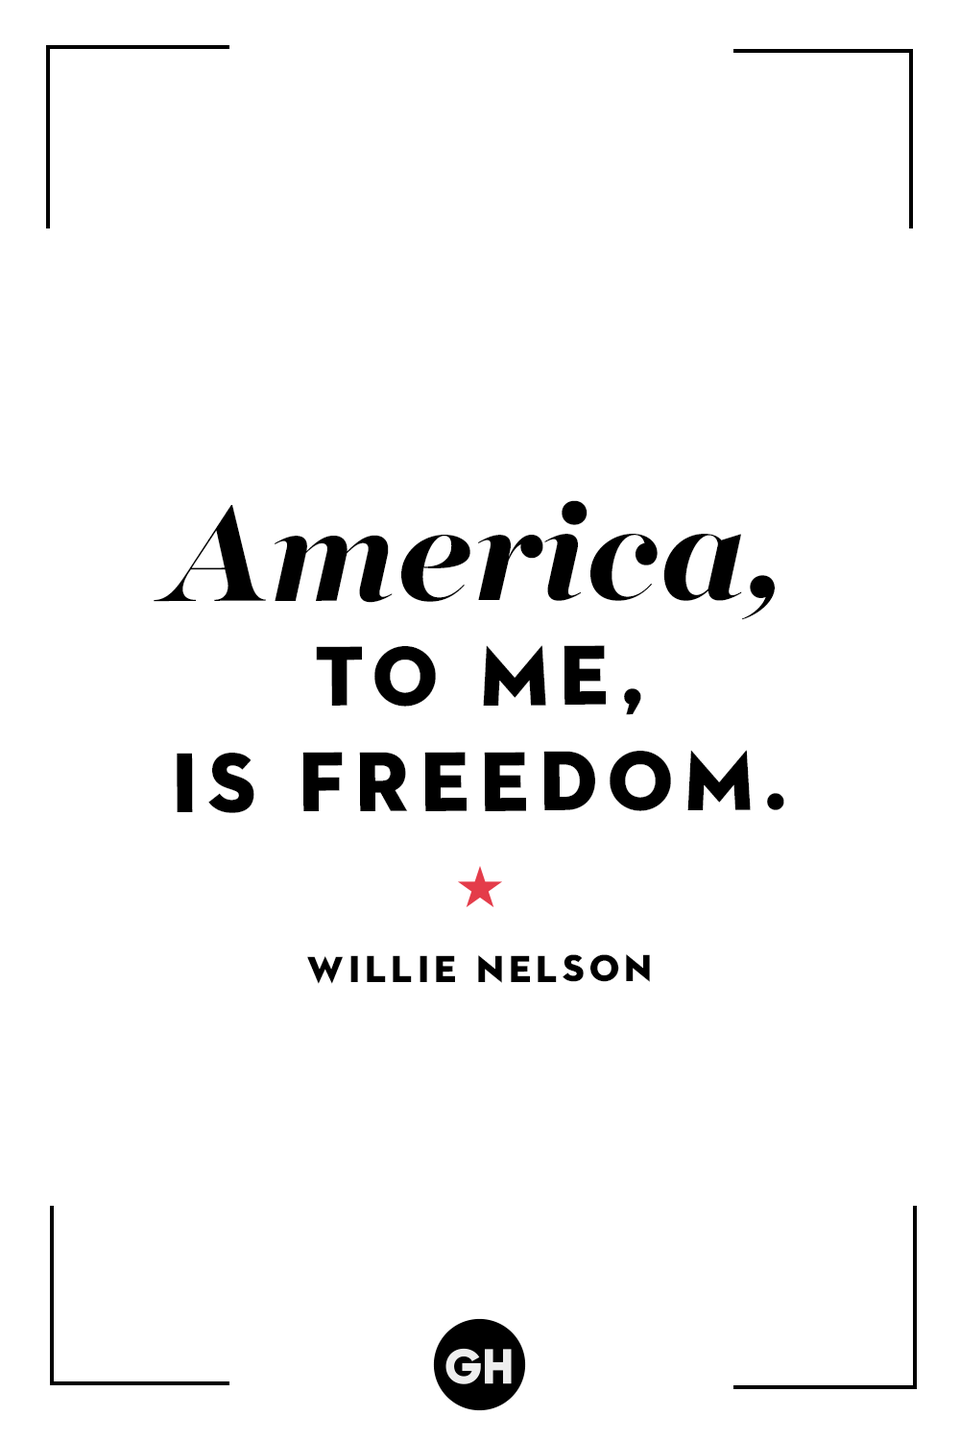 <p>America, to me, is freedom.</p>